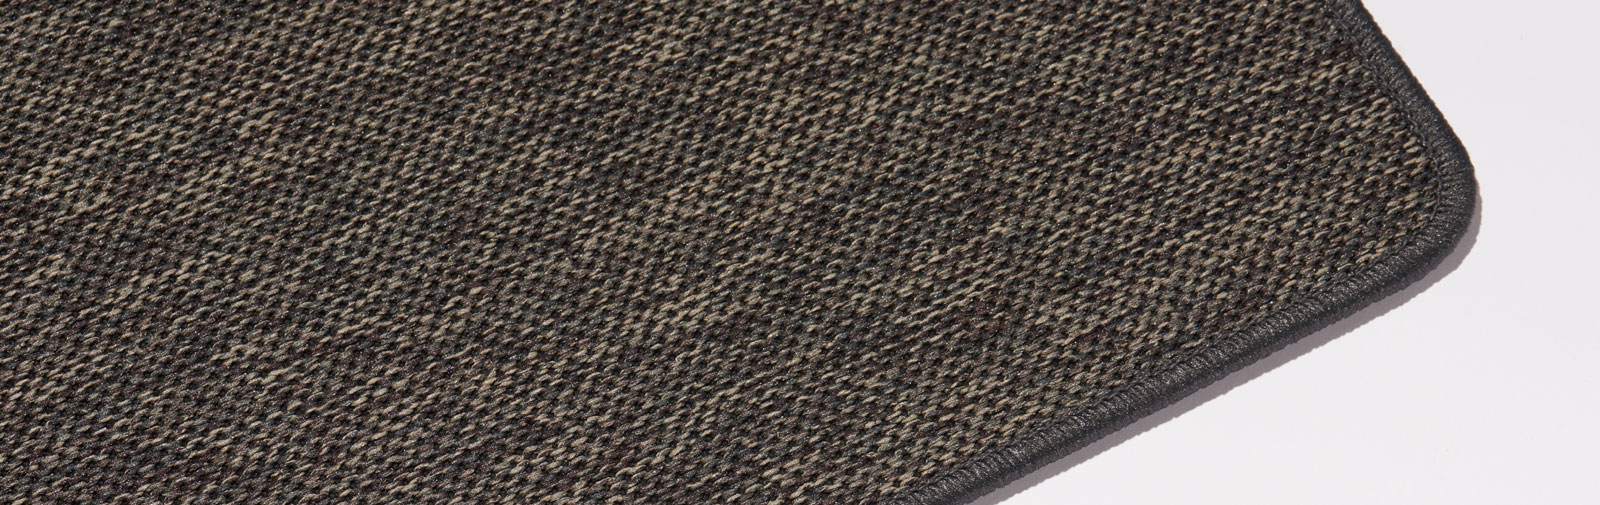 church carpet Wave color code 901 color quartz-grey